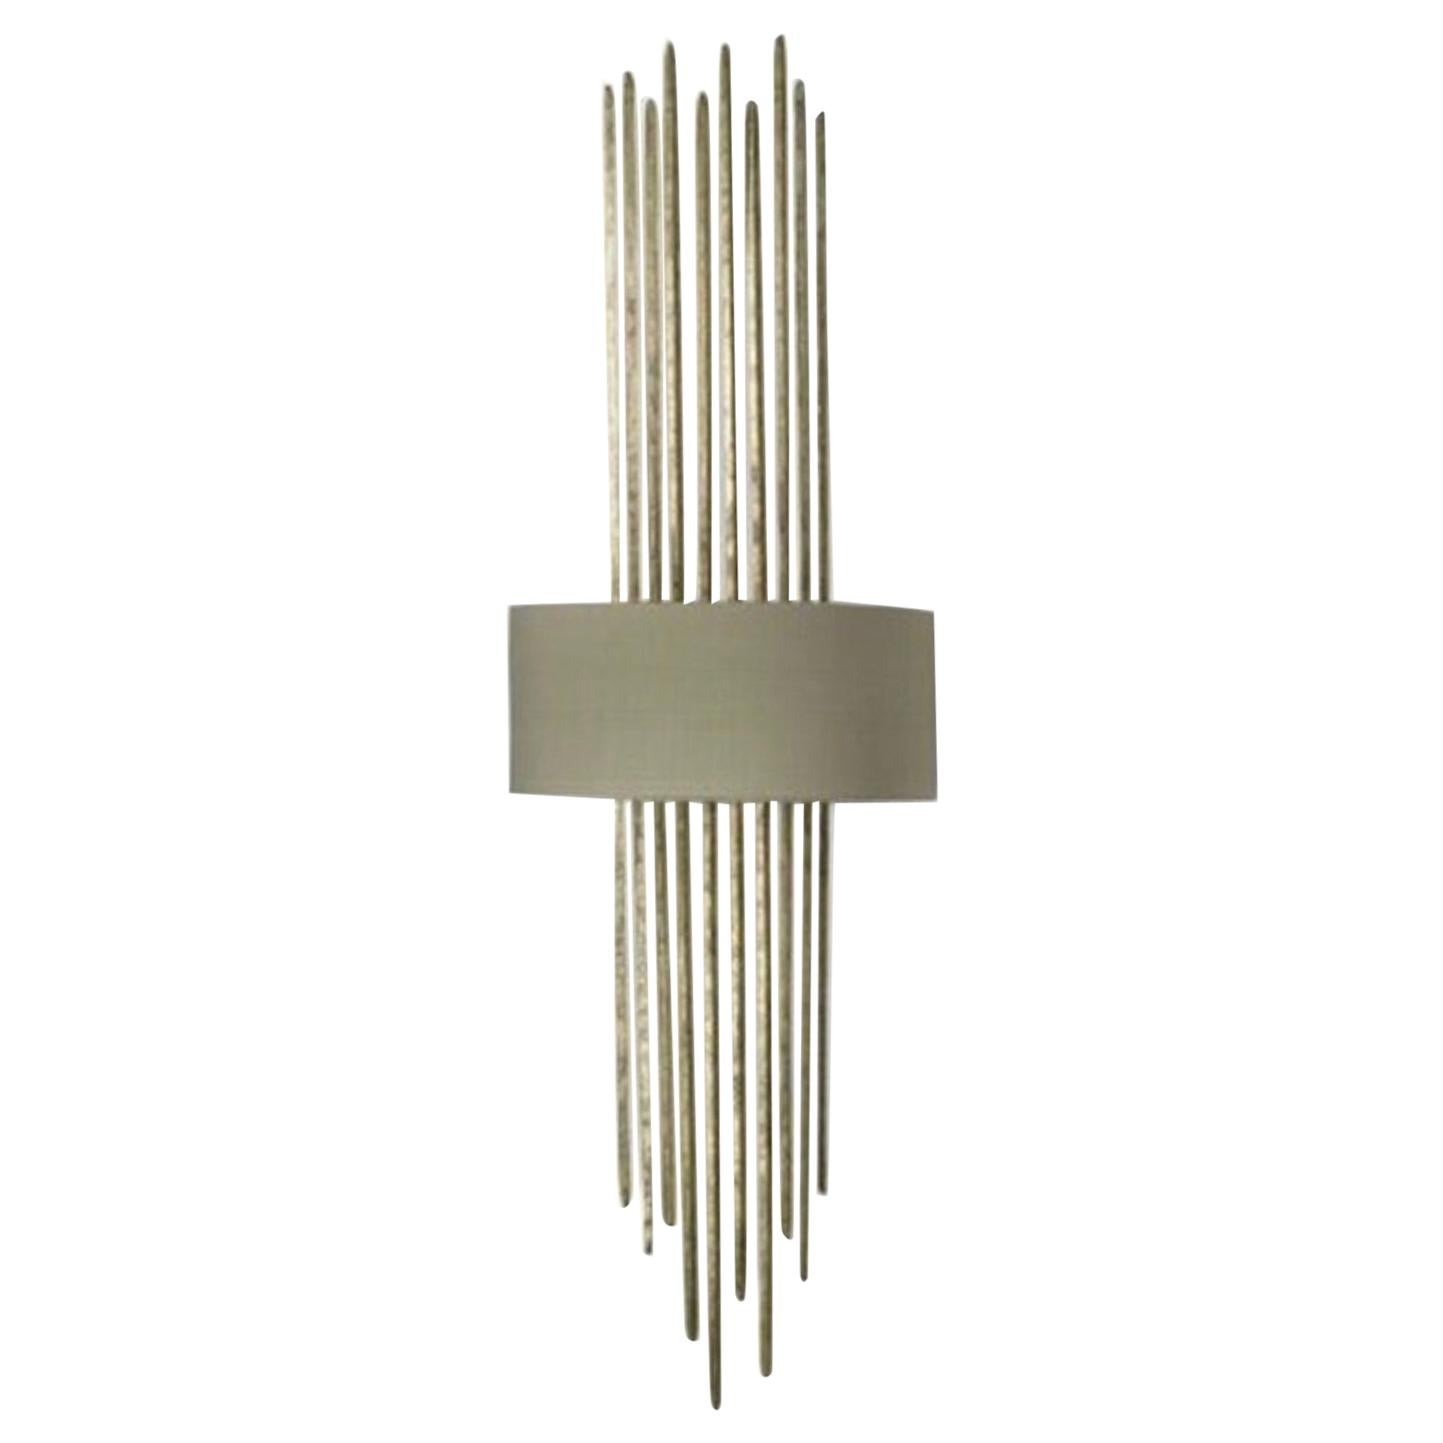 Forged Steel in White Gold Finish with Silk Lampshade Wall Light